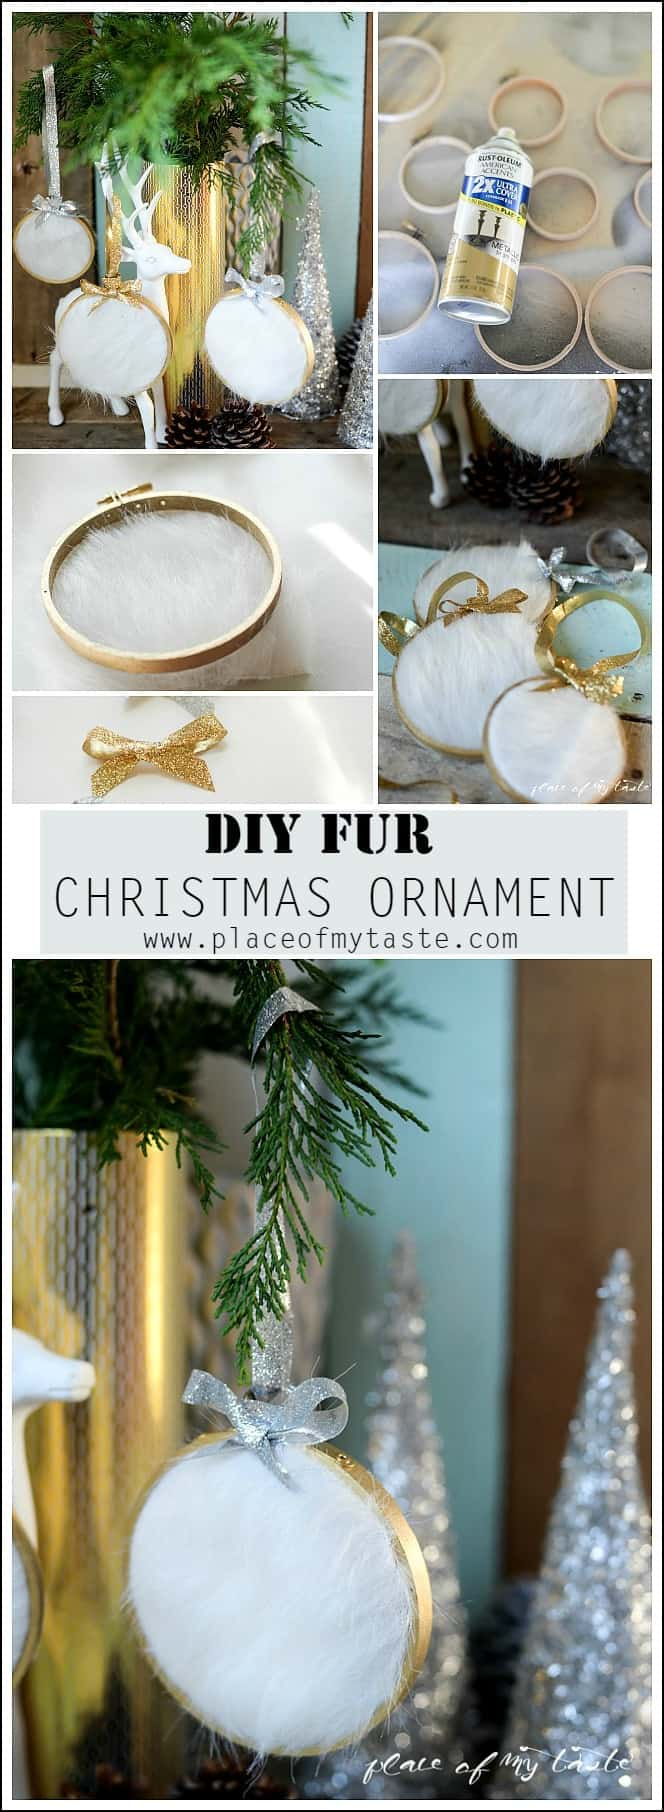 DIY Fur Christmas Ornament.